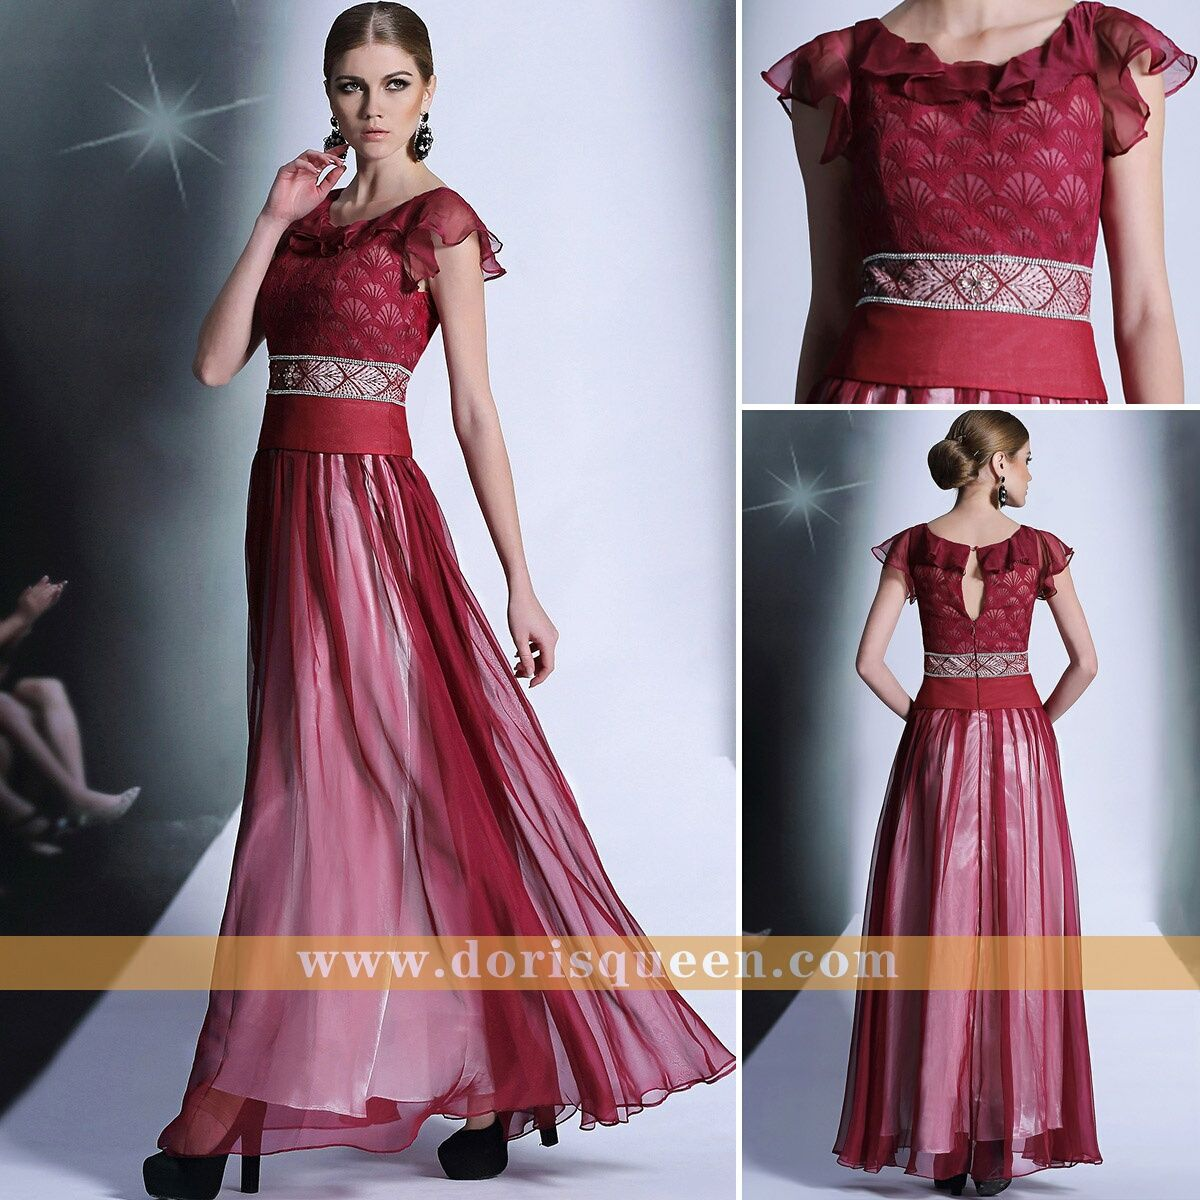 Dark red formal prom dresses cocktail dresses party celebrity